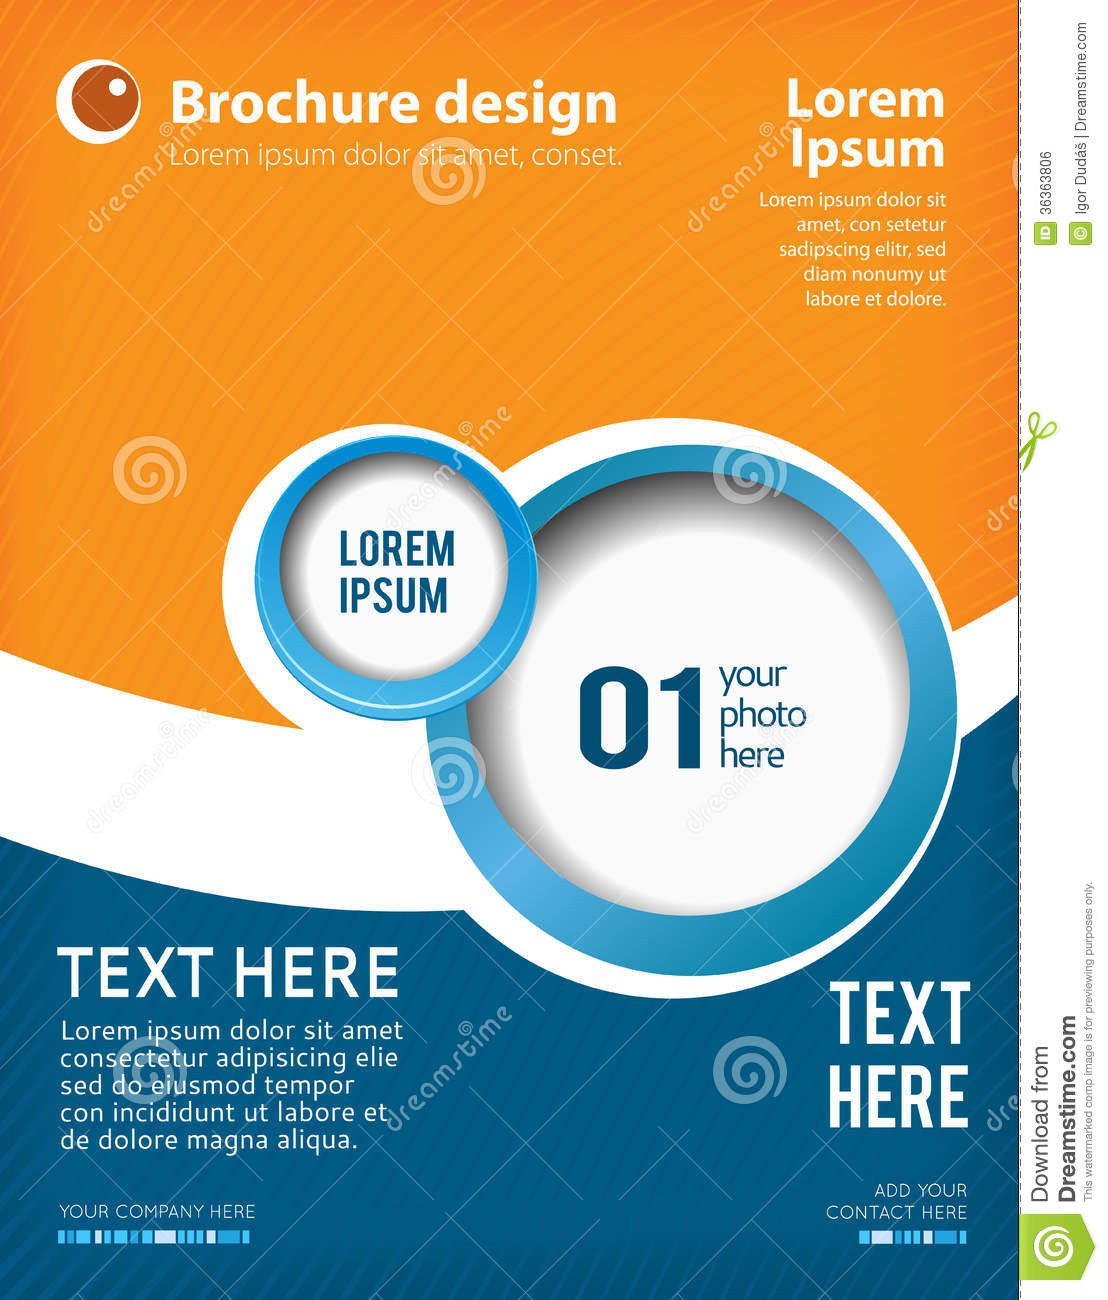 Free Poster Design Templates Design Layout Template Stock Illustration Illustration Of